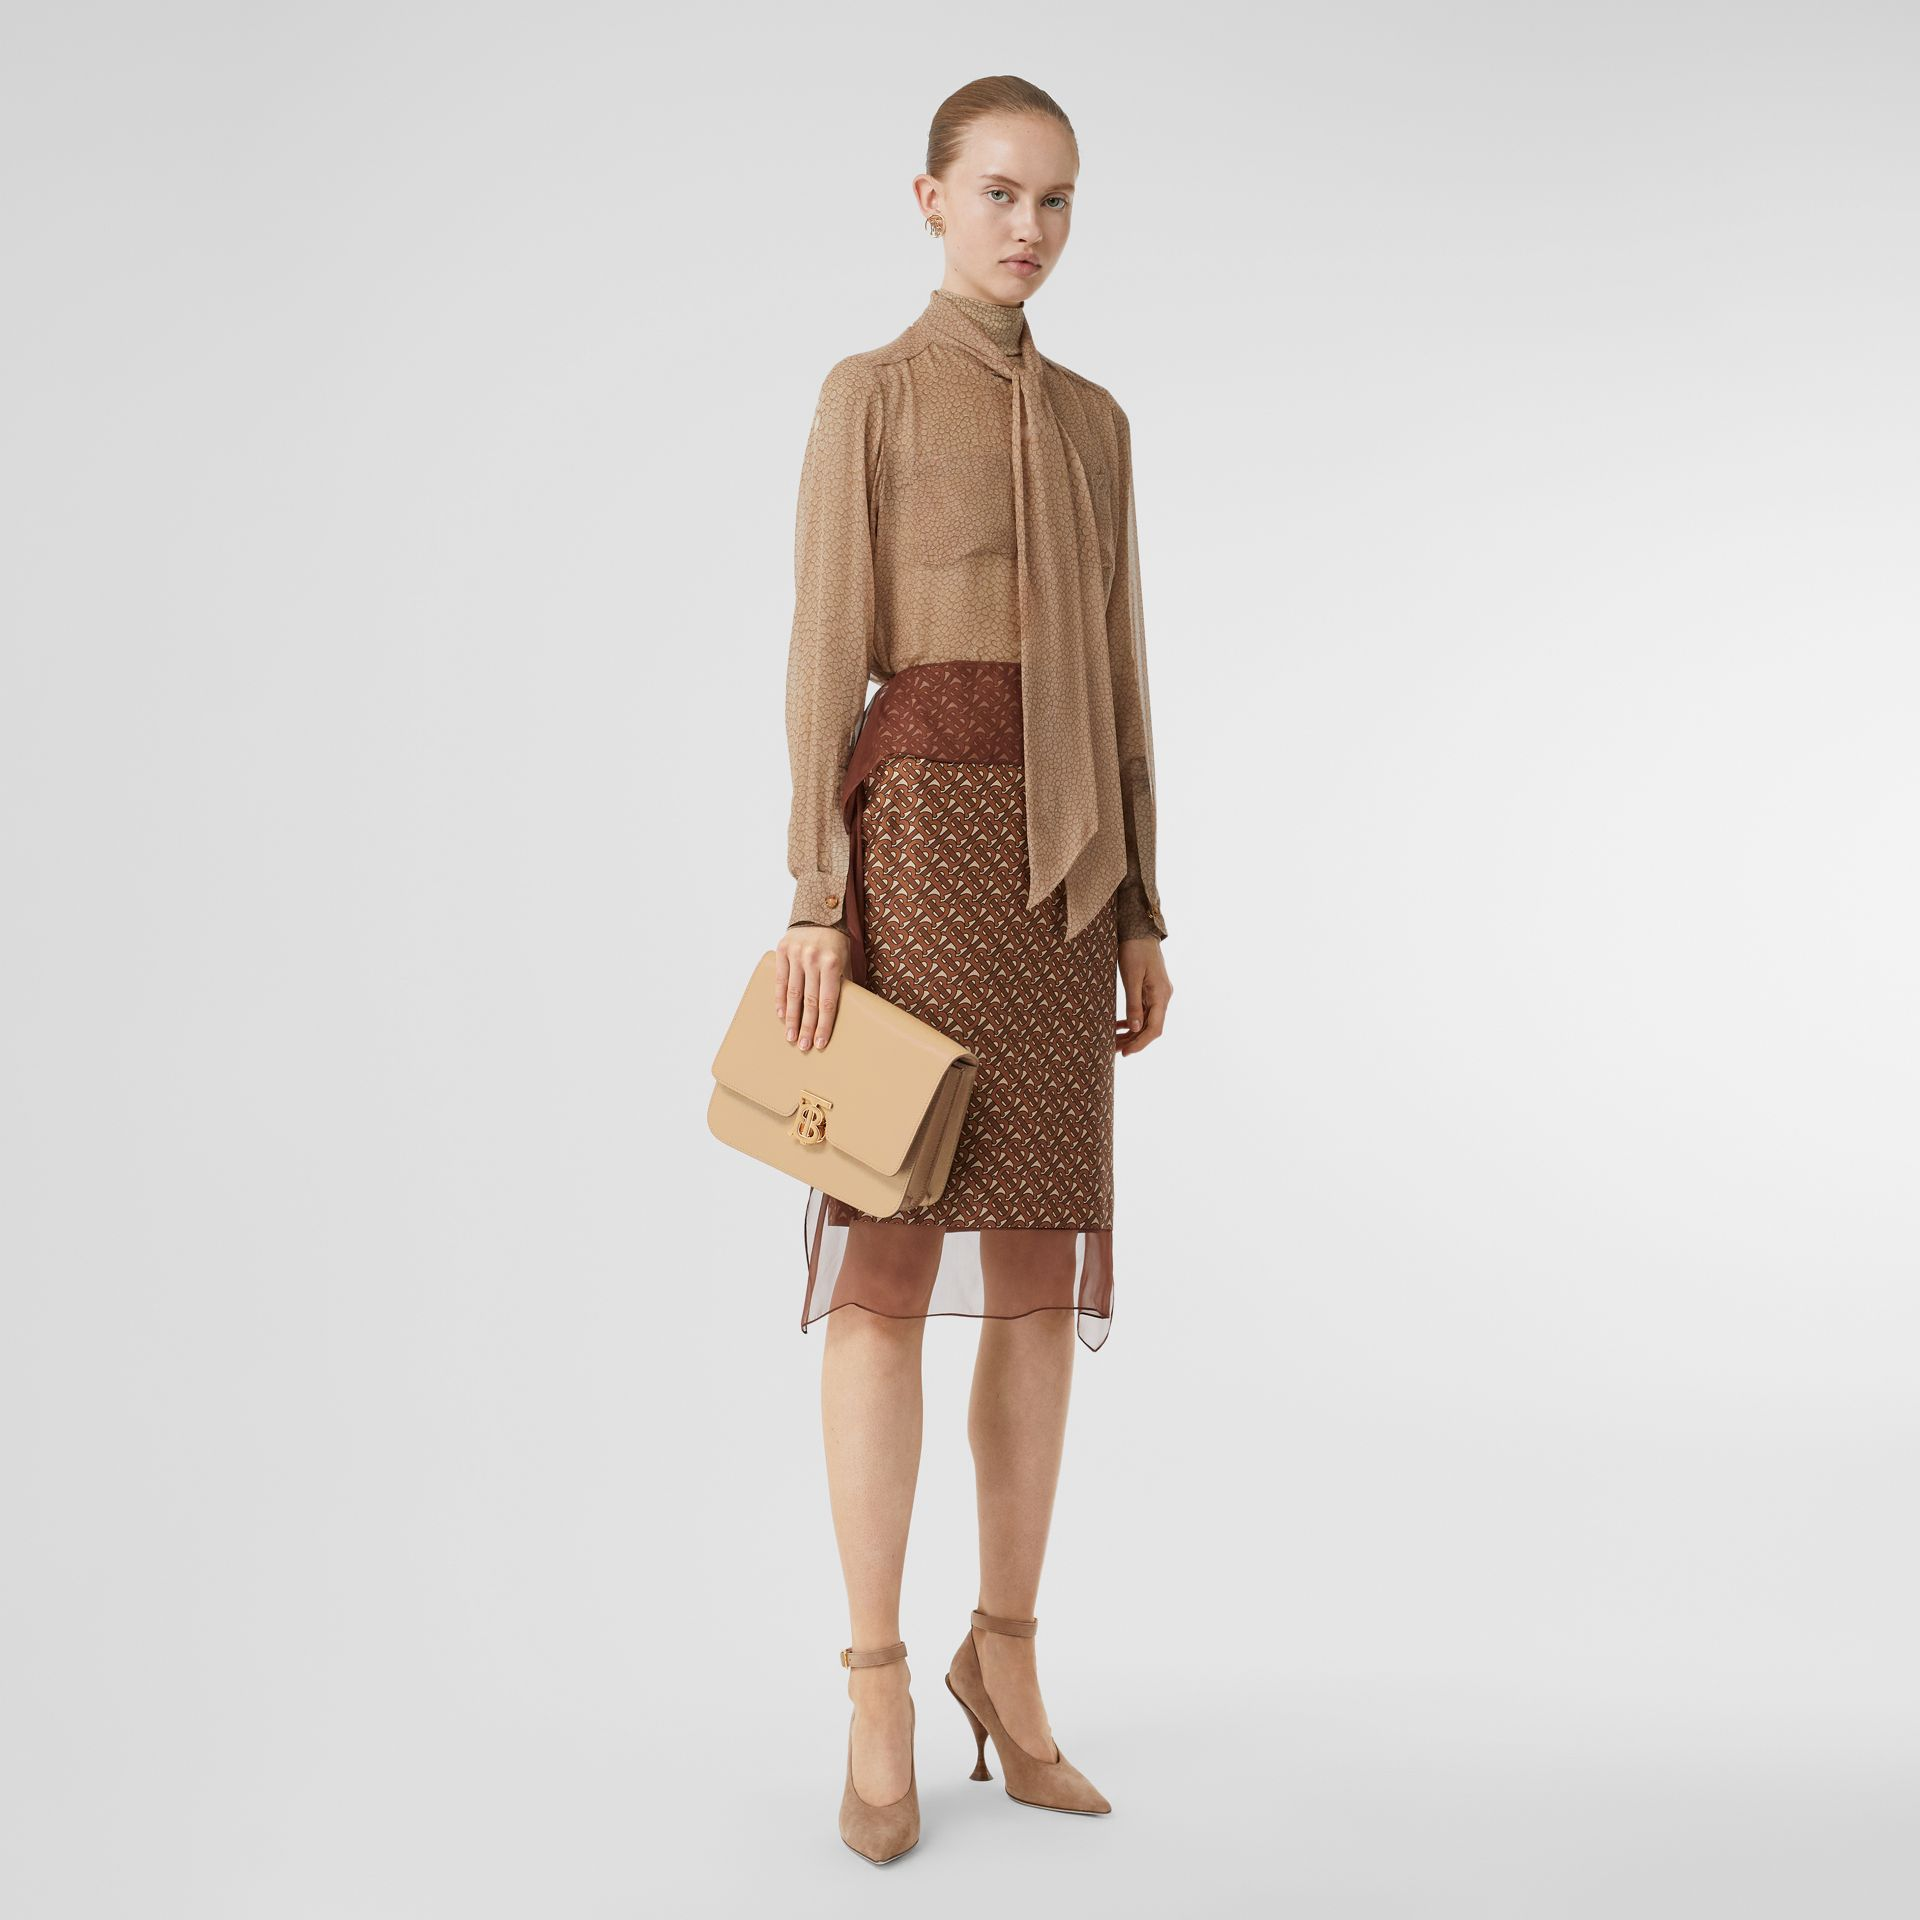 Medium Grainy Leather TB Bag in Archive Beige - Women | Burberry Hong Kong S.A.R - gallery image 5